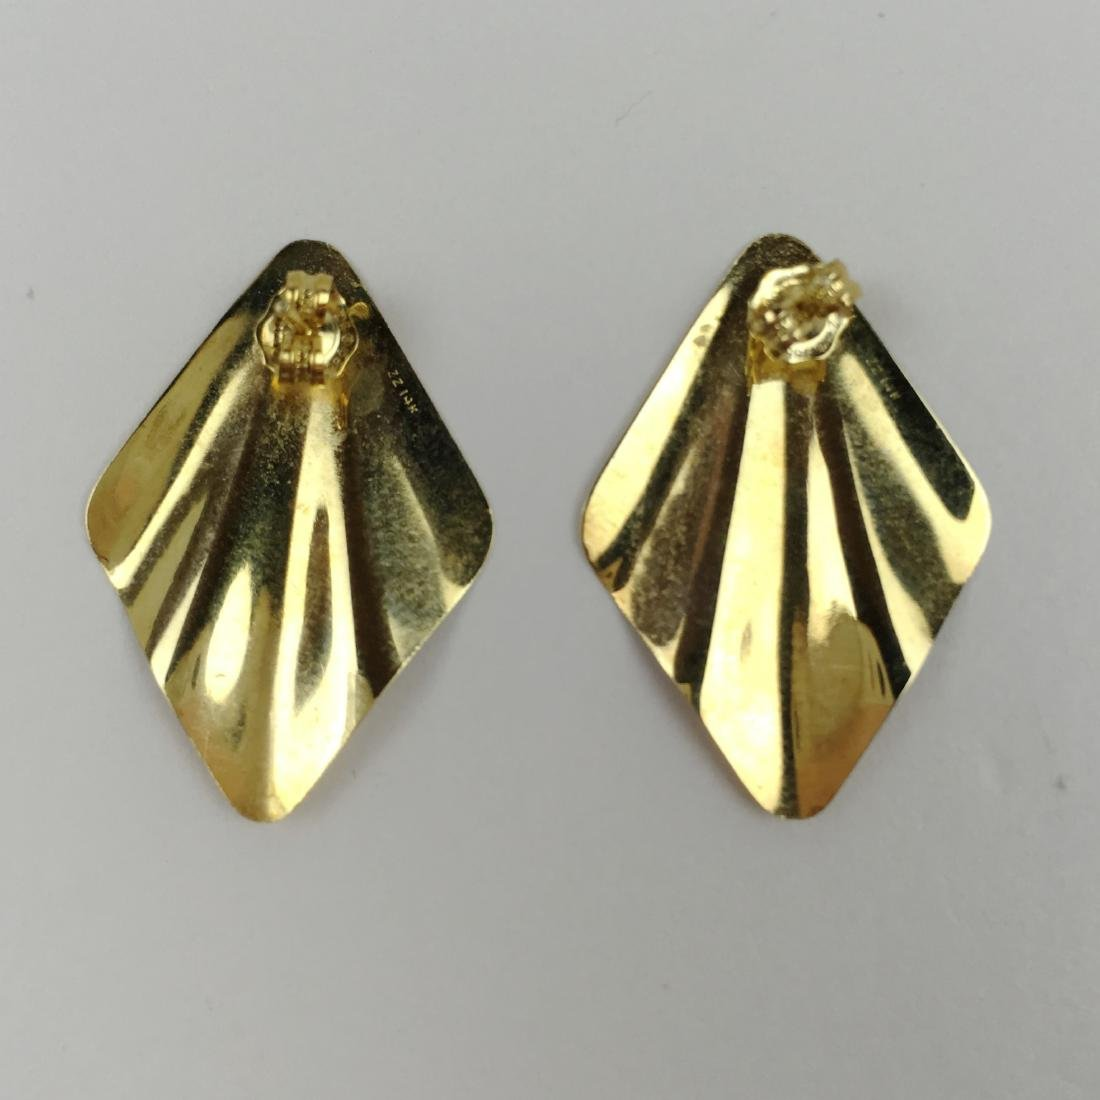 2 PRS OF 14K YELLOW GOLD EARRINGS - 3